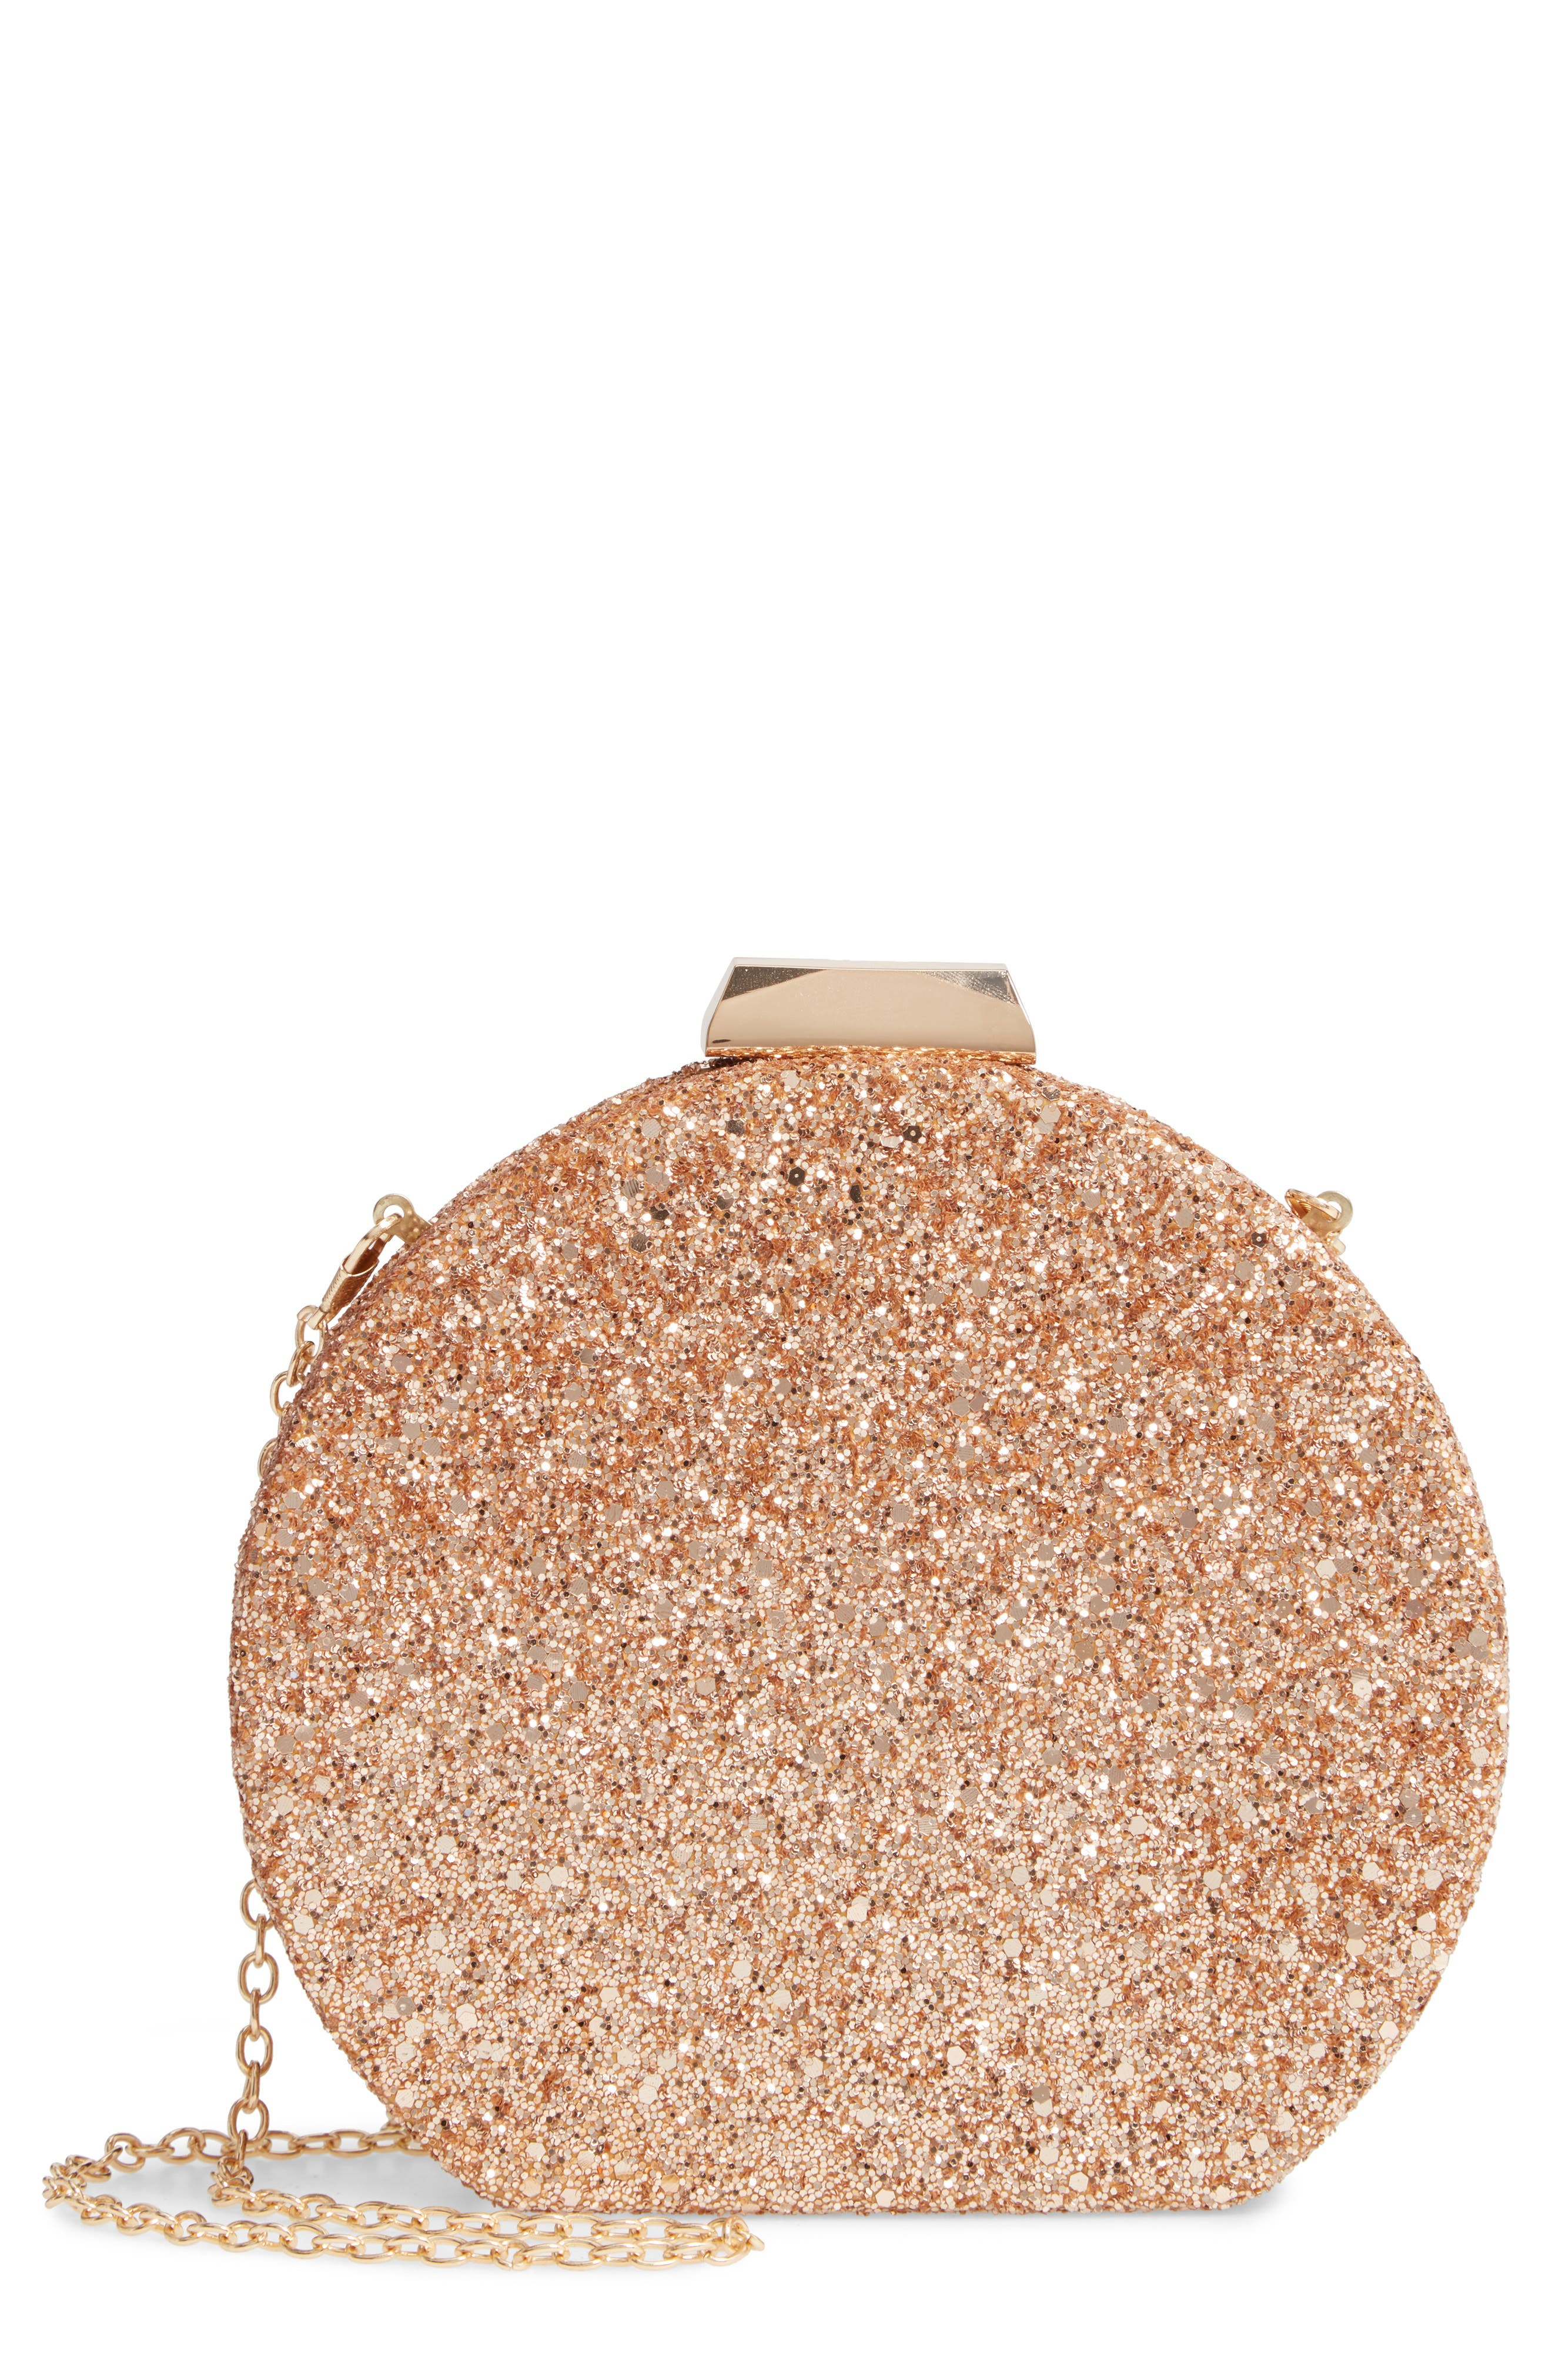 Glitter Clutch,                             Main thumbnail 1, color,                             GOLD